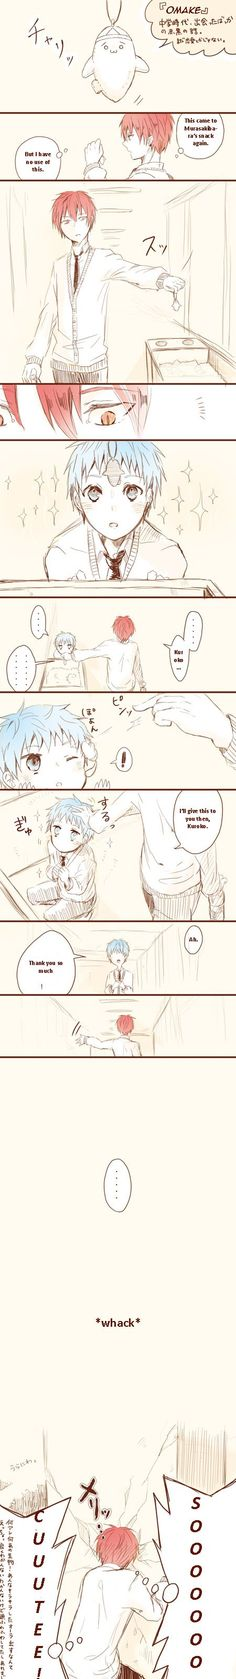 Kuroko sure is lethally adorable here, but at the same time Akashi is almost equally cute for being so fangirly as to walking right into that wall xD: